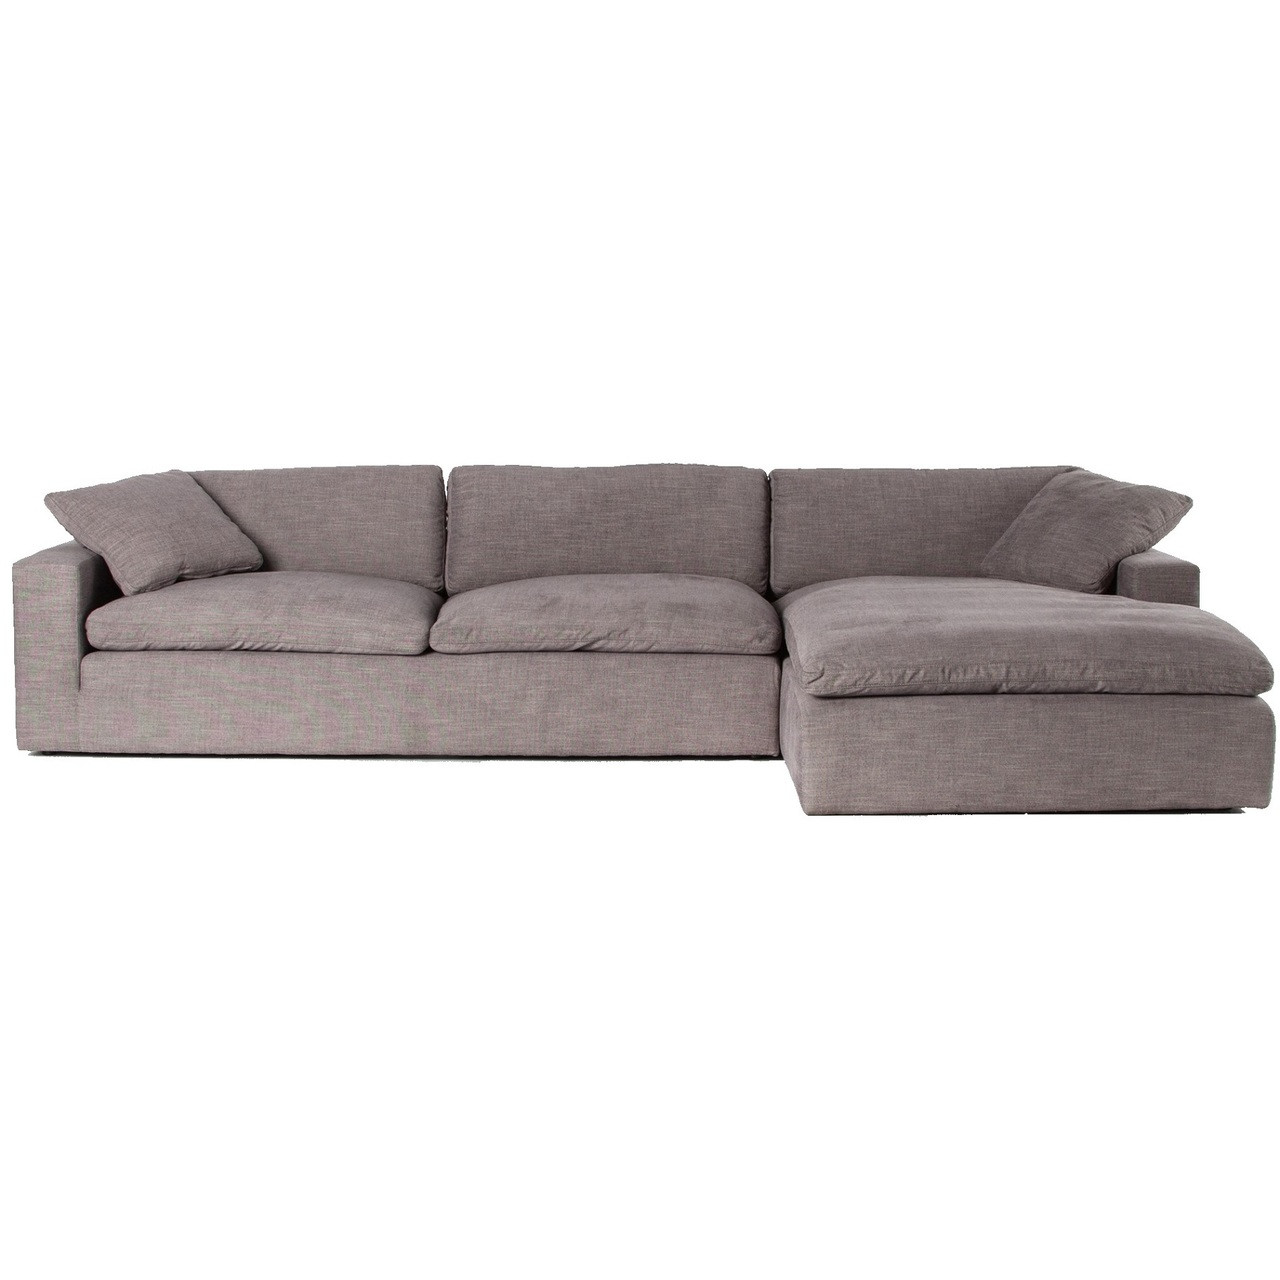 Plume Grey Upholstered Block Arm 2 Piece Sectional Sofa 106